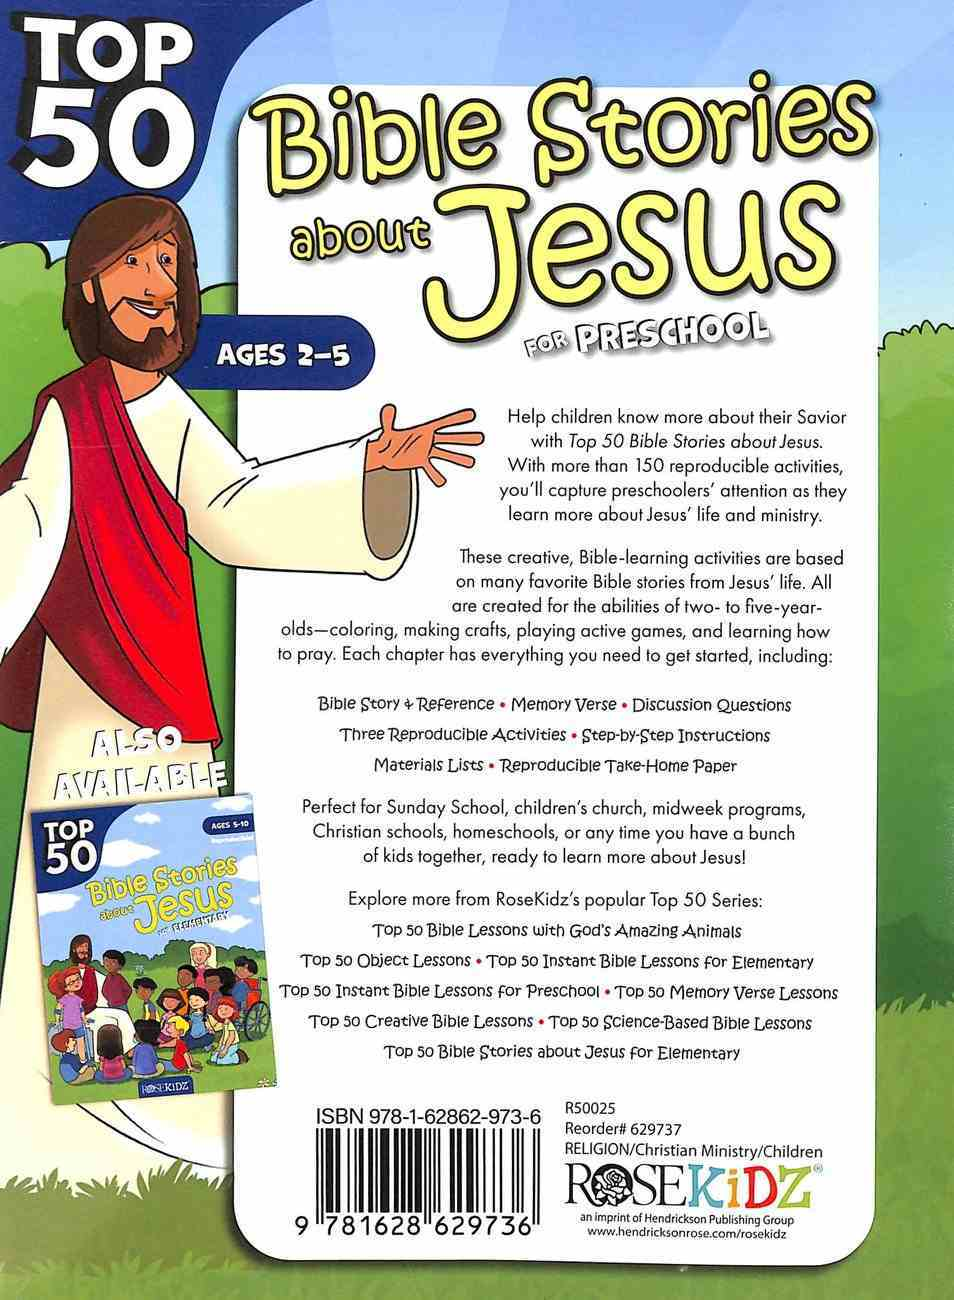 Top 50 Bible Stories About Jesus For Preschool (Ages 2-5) (Rosekidz Top 50 Series) Paperback